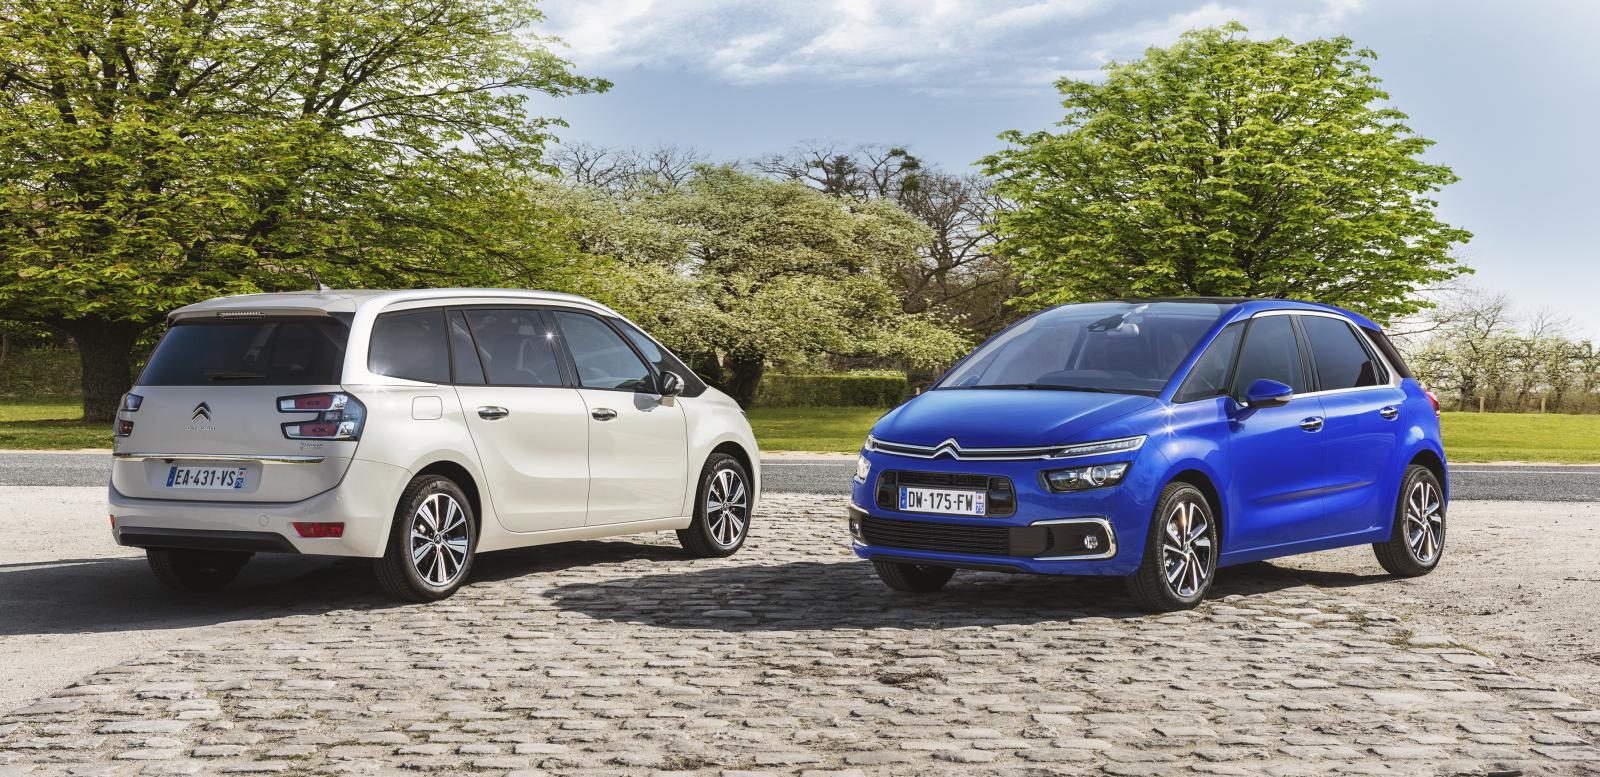 Grand C4 Picasso Shine 2016 and C4 Picasso 2016